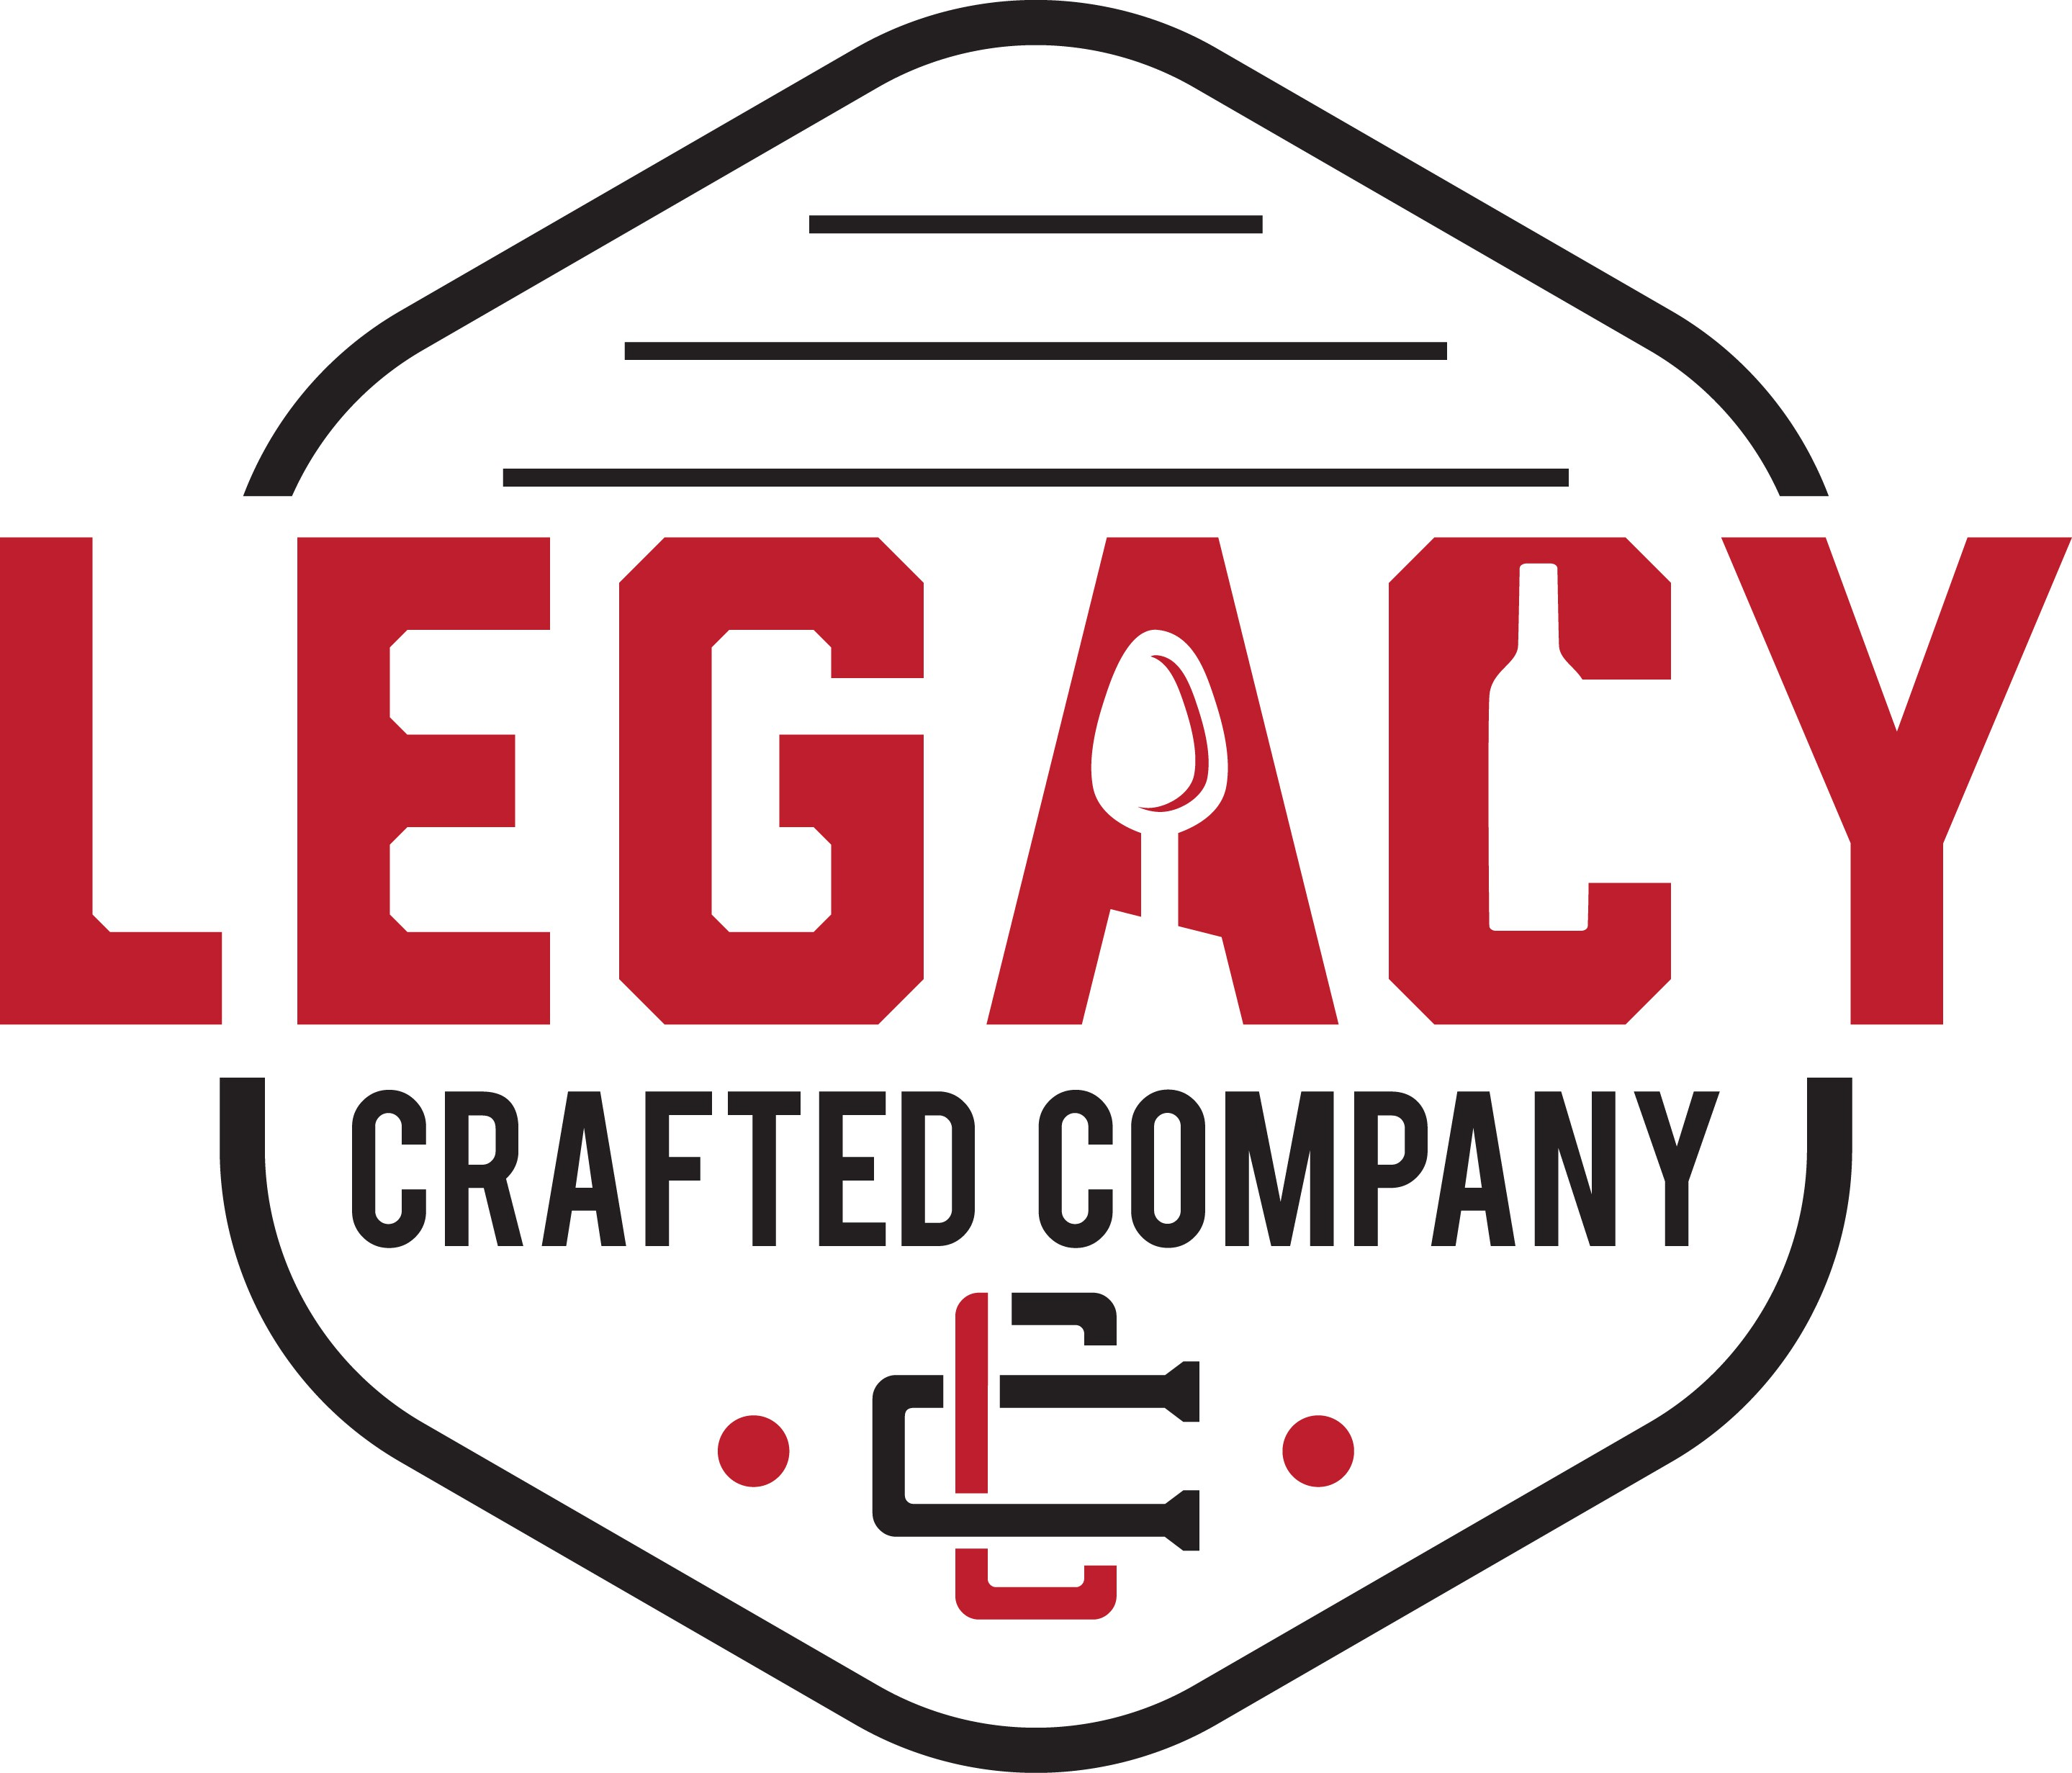 Food and Beverage Company Seeks Authentic Logo Identity